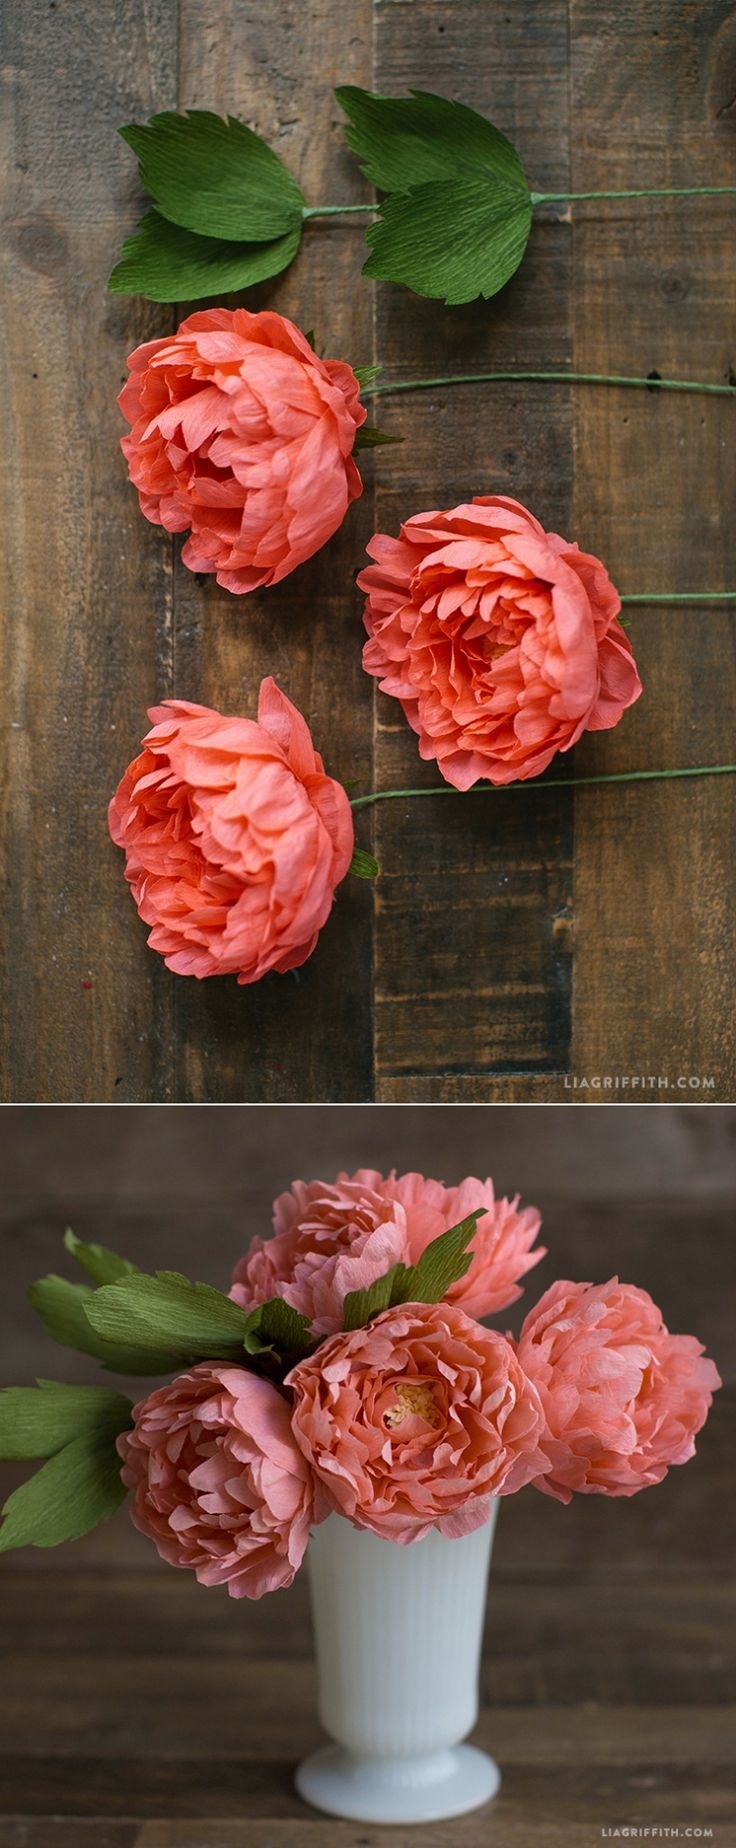 #CrepePaperFlowers www.LiaGriffith.com